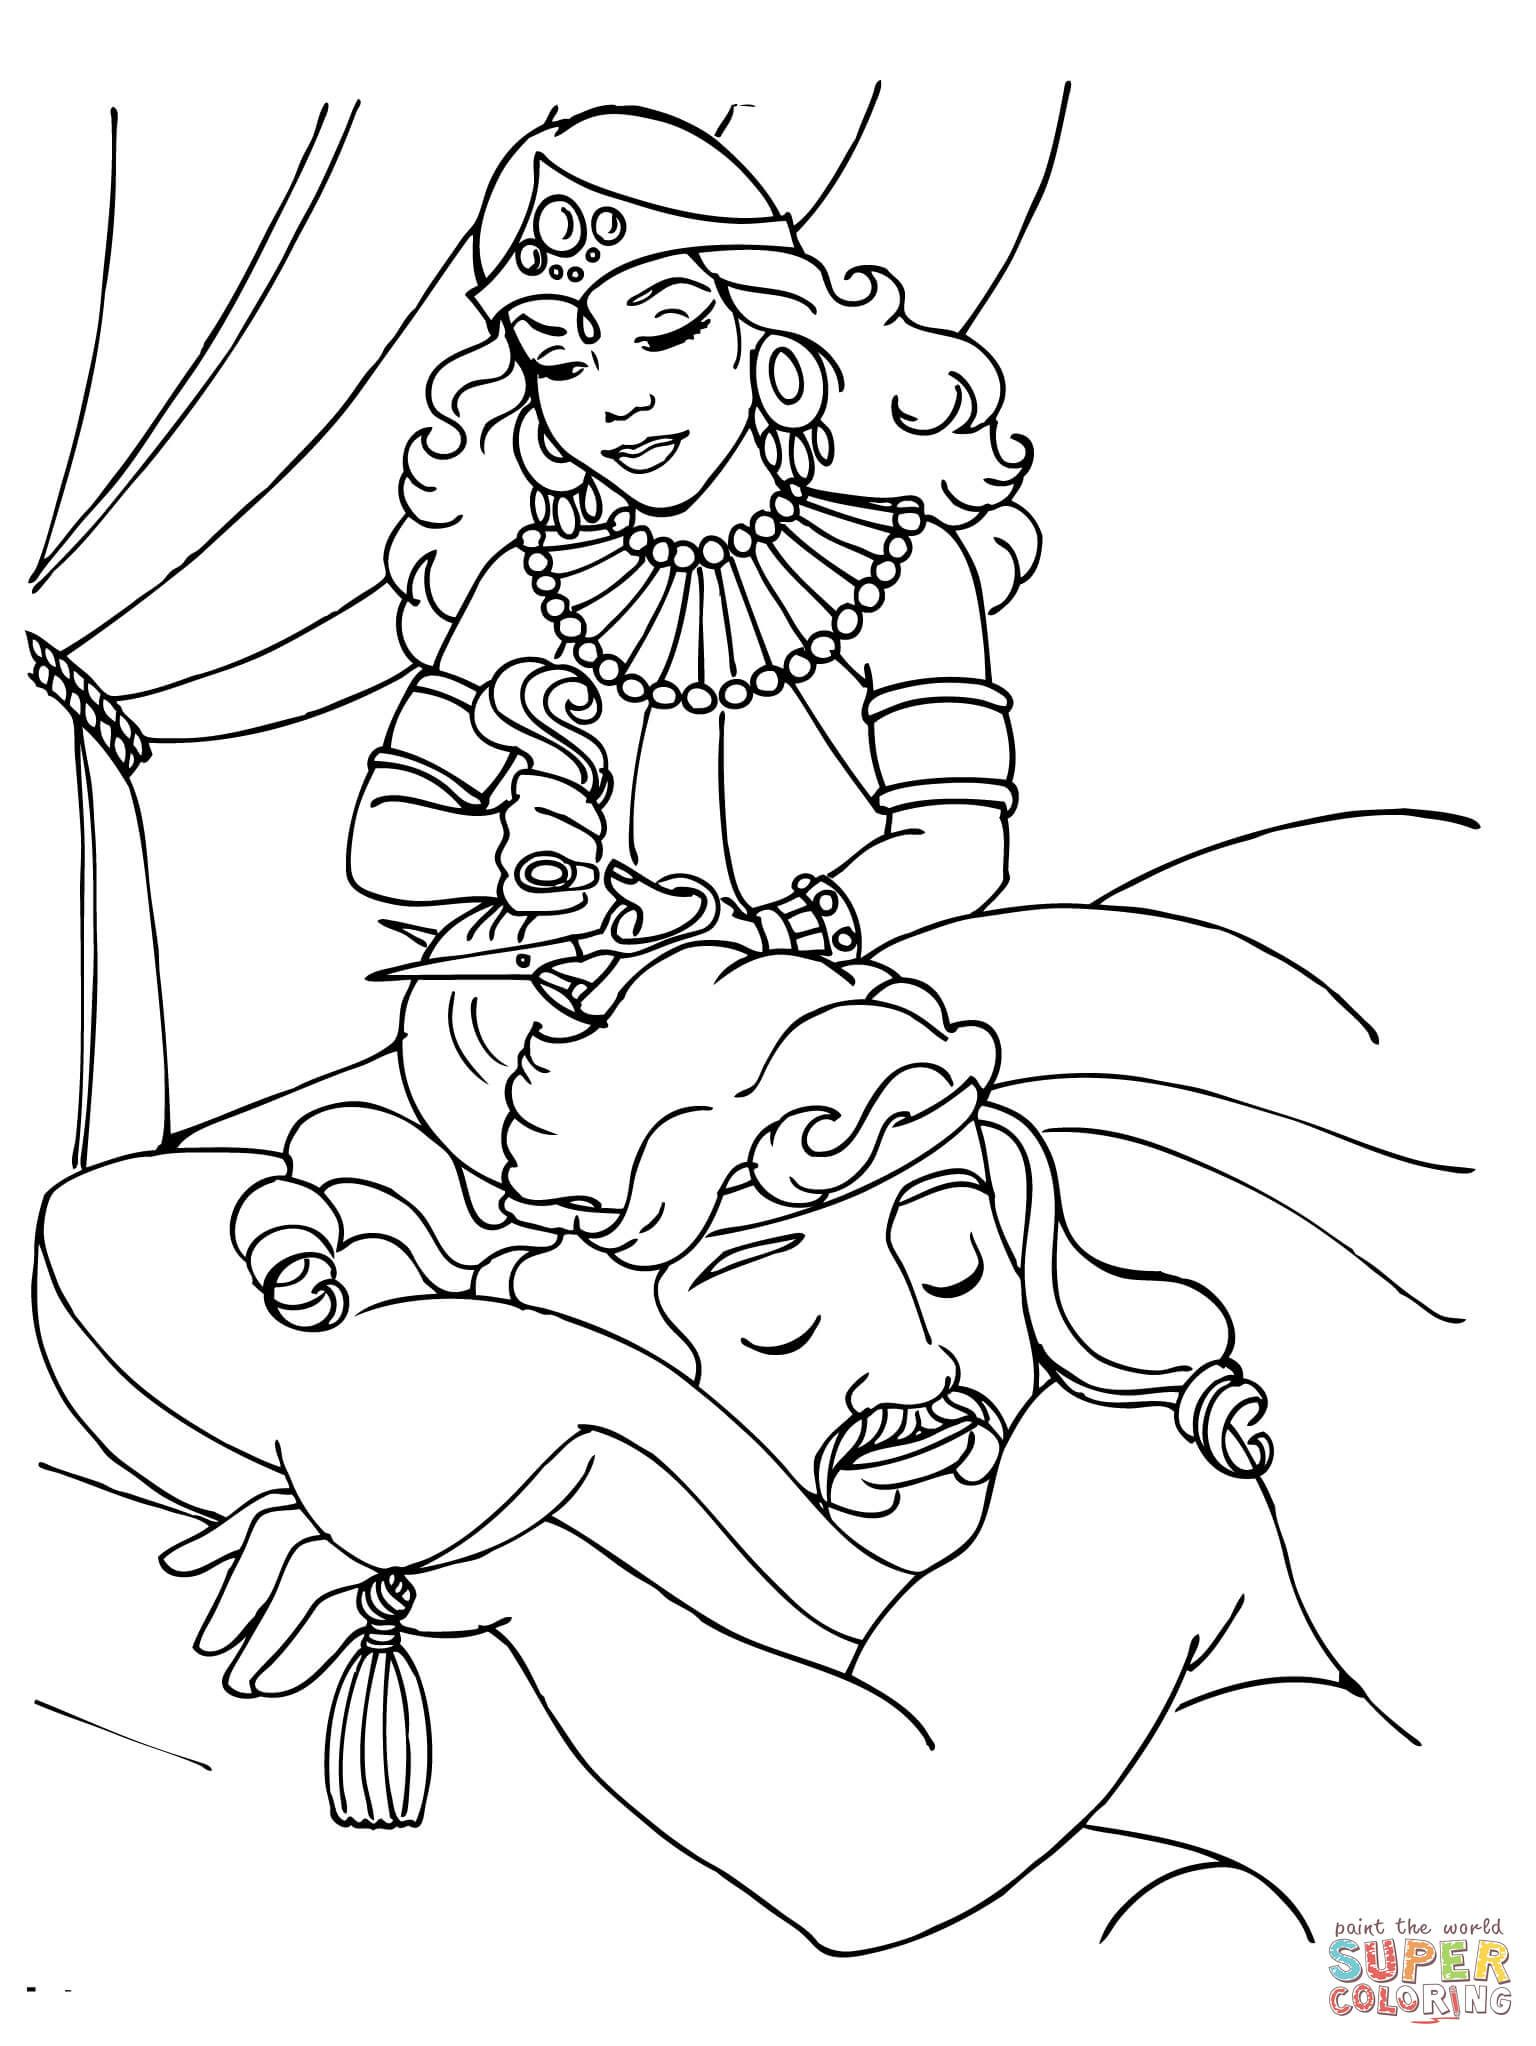 samson and delilah coloring pages samson and delilah coloring page free printable coloring coloring pages and delilah samson